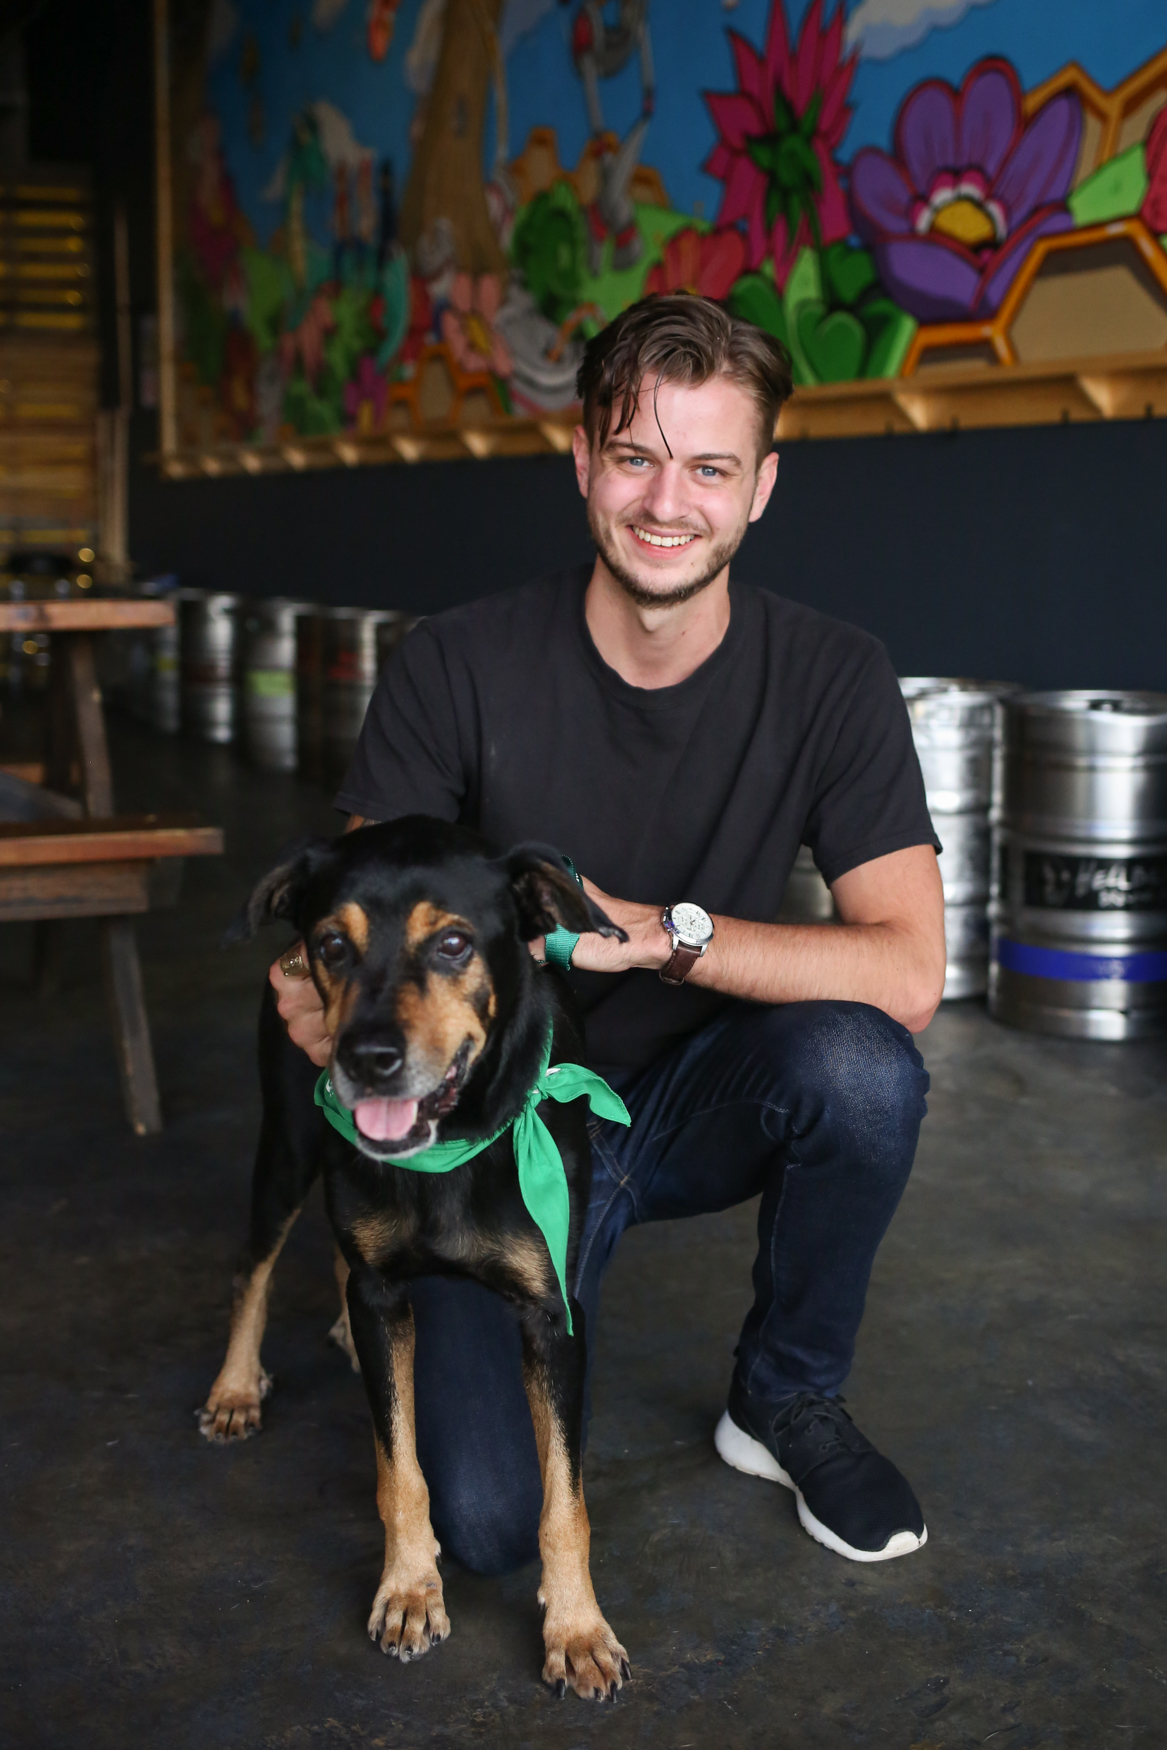 Tyler is originally from Boston, MA and is working as a CSA for TransitScreen. He builds motorcycles for fun and his favorite musician is GoldLink. Learn more about Tyler on our Facebook page. (Image: Amanda Andrade-Rhoades/ DC Refined)